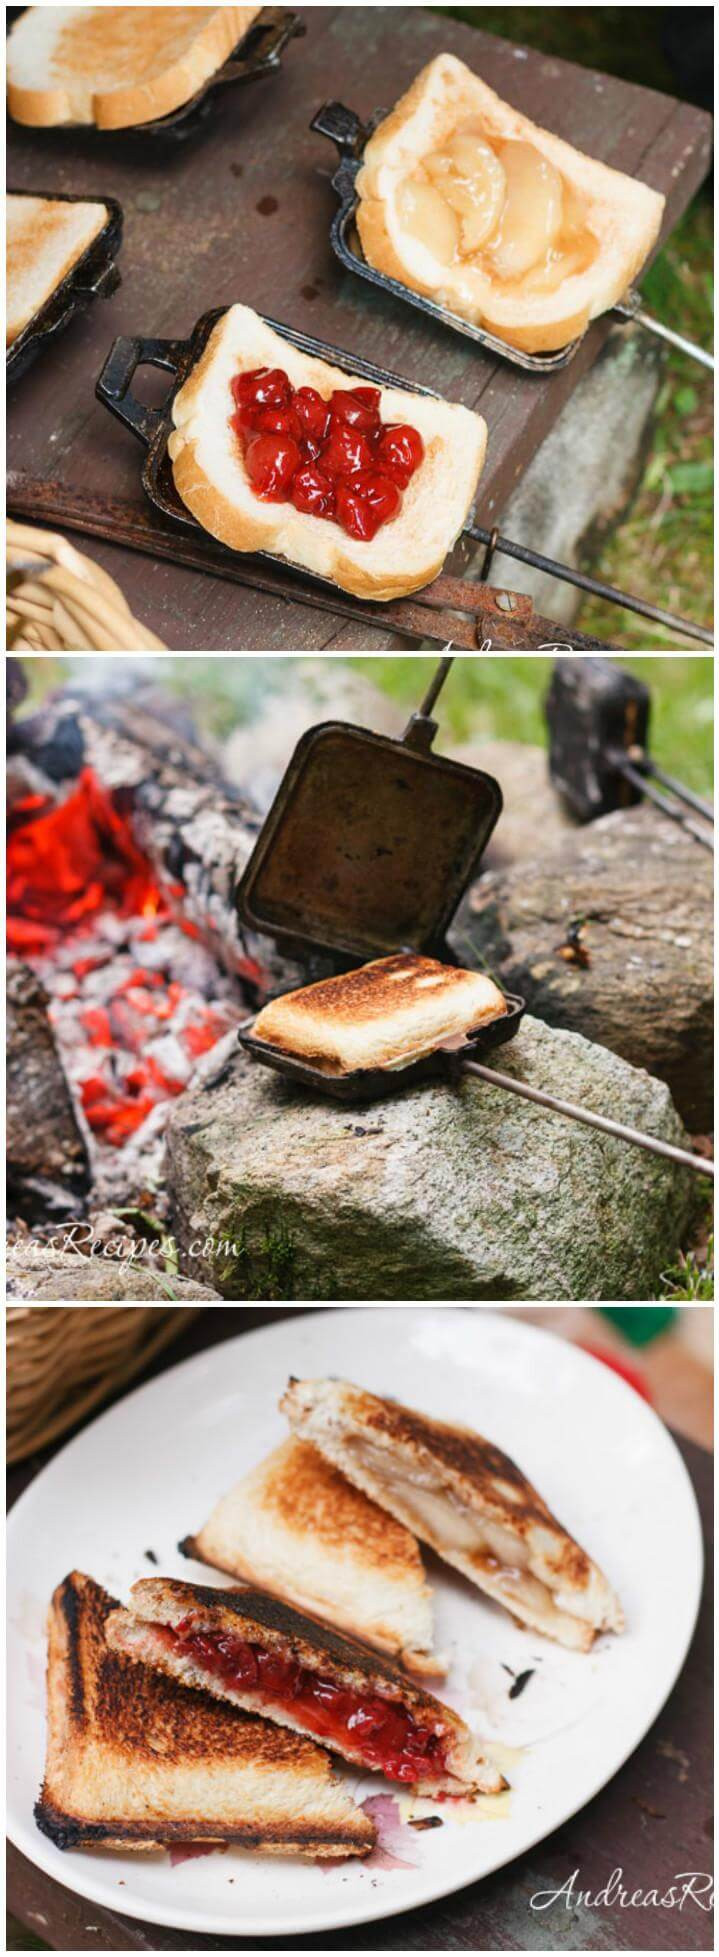 Camping Pie Iron Recipes  20 Best & Easy To Make Pie Iron Recipes Page 3 of 3